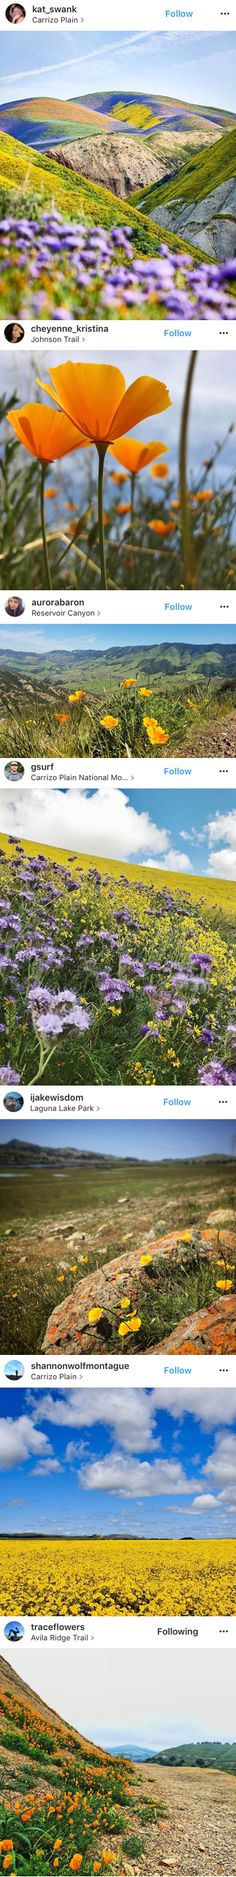 Discover the top spots to see wildflowers and California poppies around San Luis Obispo today, including the Carrizo Plain National Monument, Shell Creek Road and more!